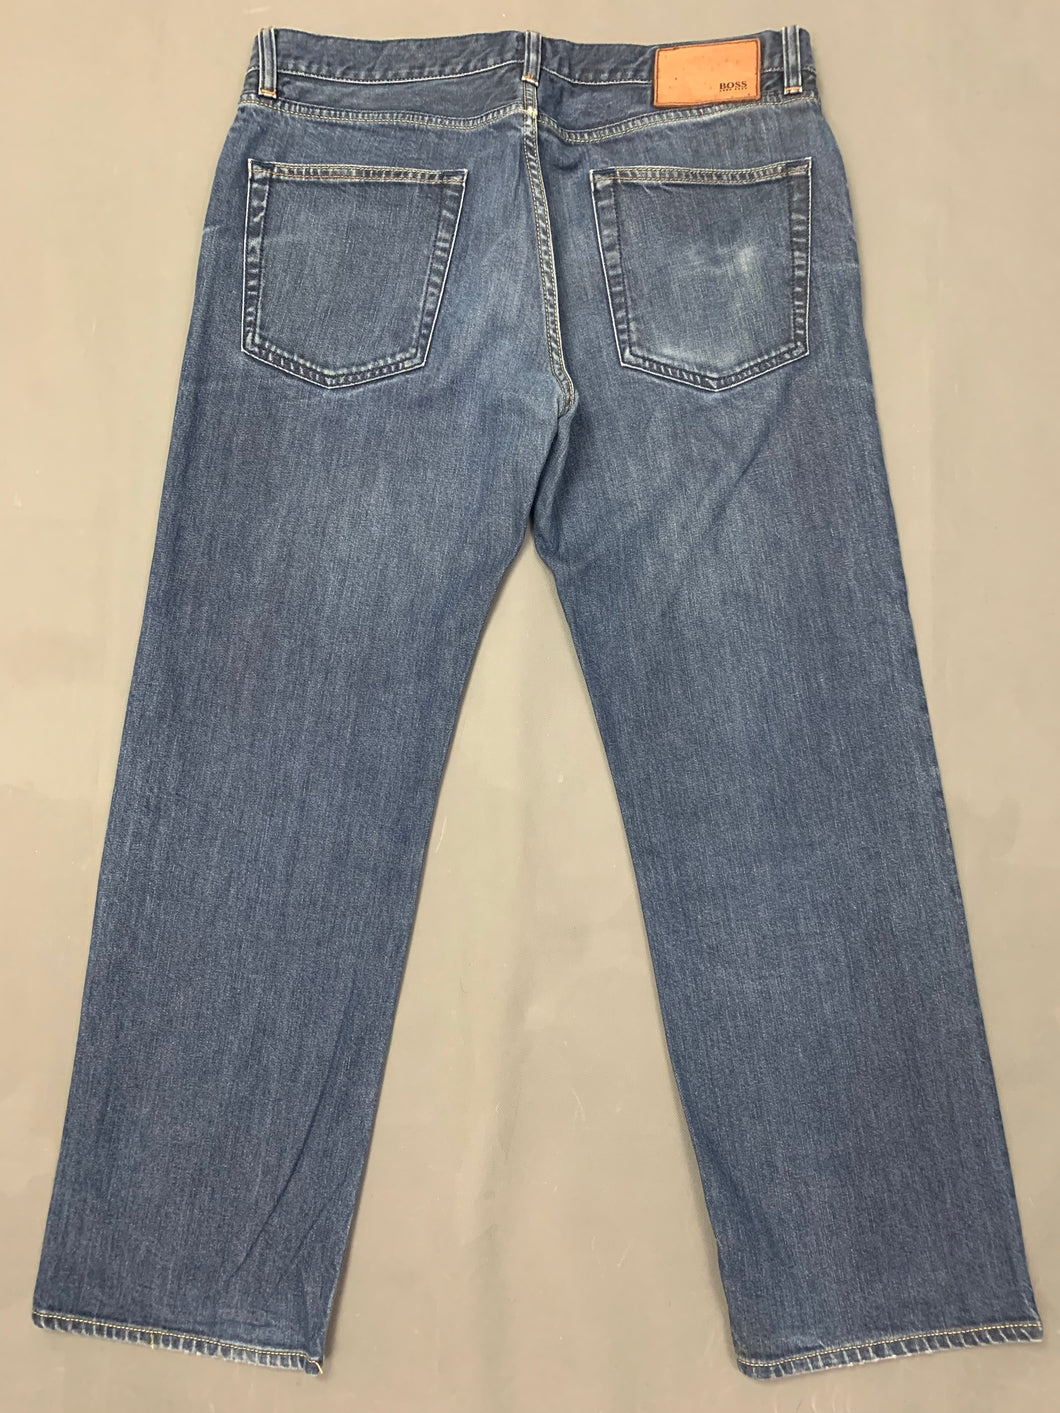 HUGO BOSS Mens SCOUT Blue Denim JEANS Size Waist 36